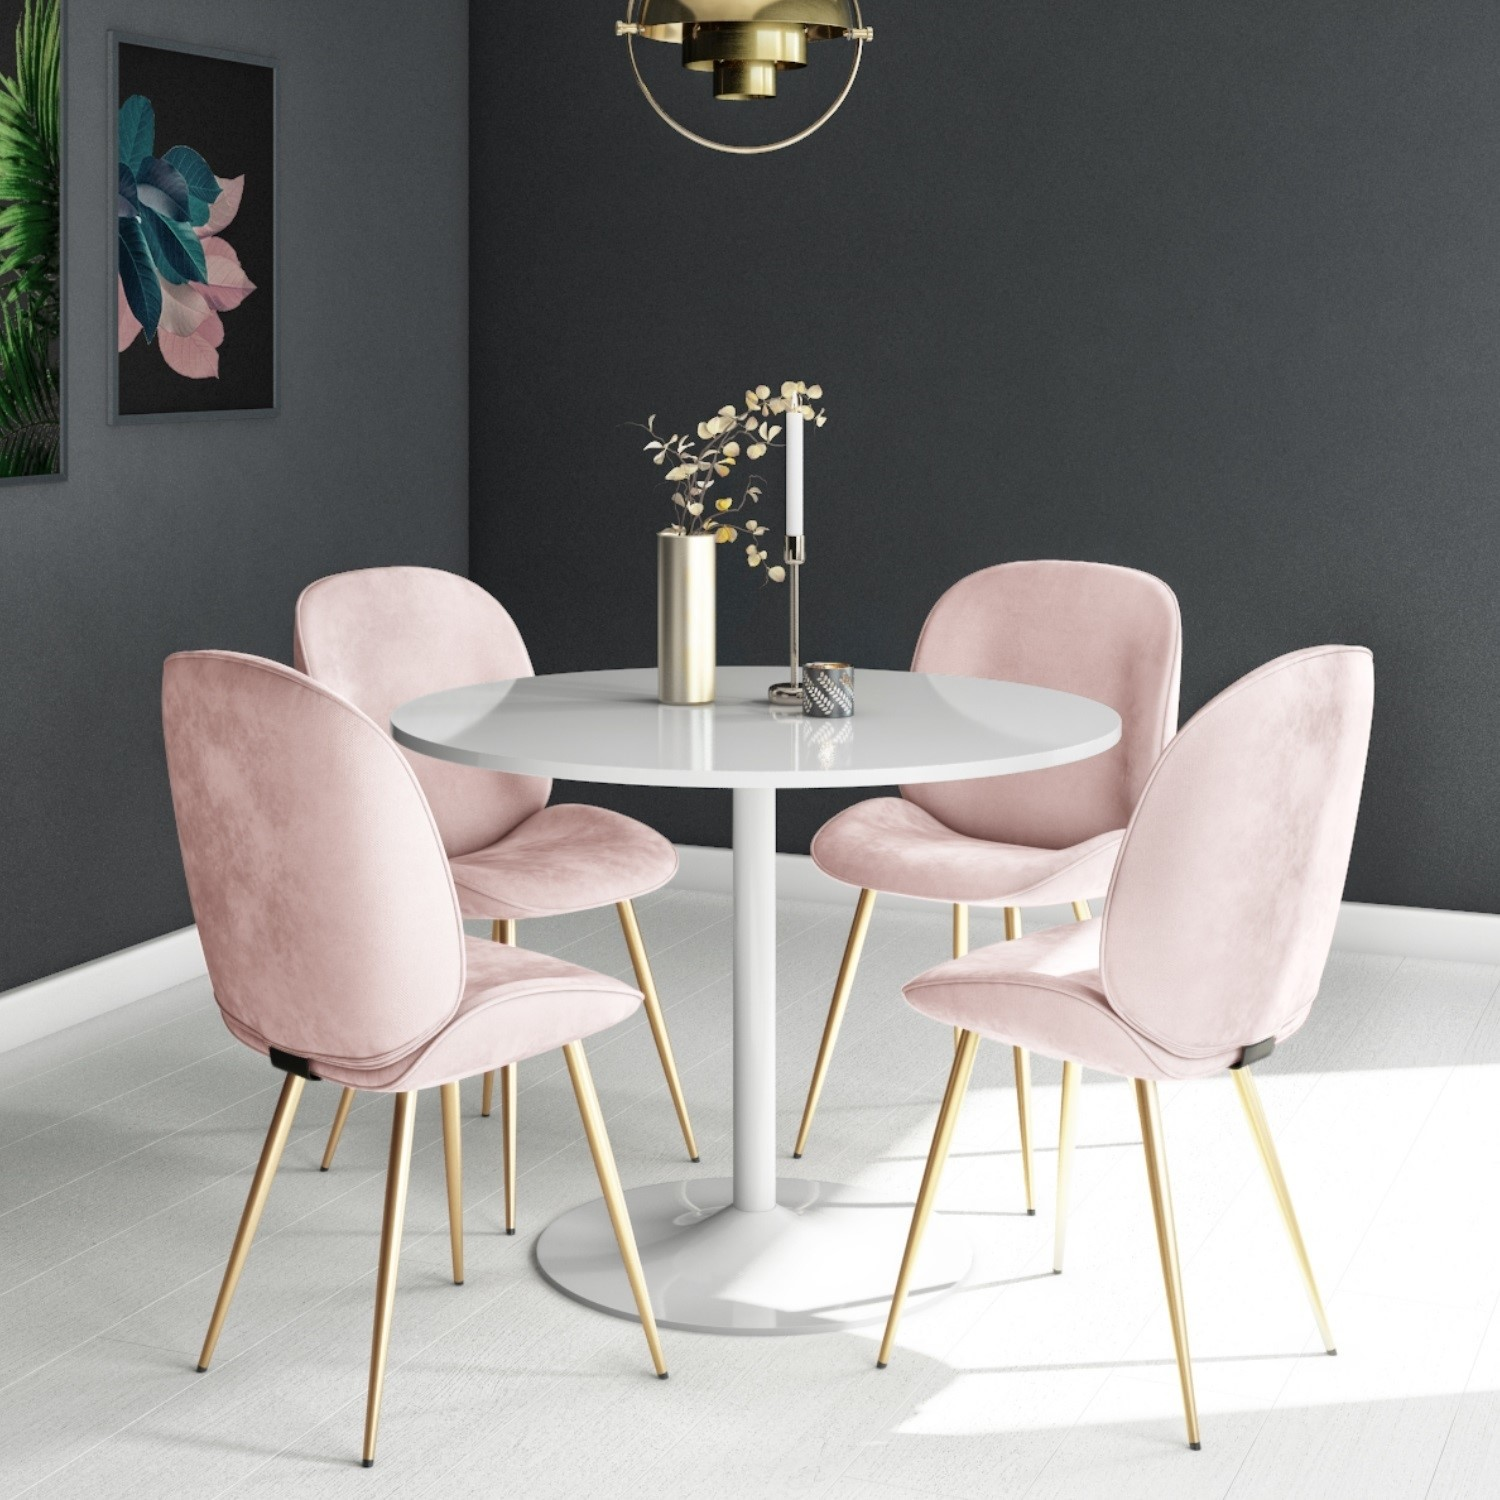 Jenna White Round Table & 9 Chairs in Pink Velvet with Gold Legs